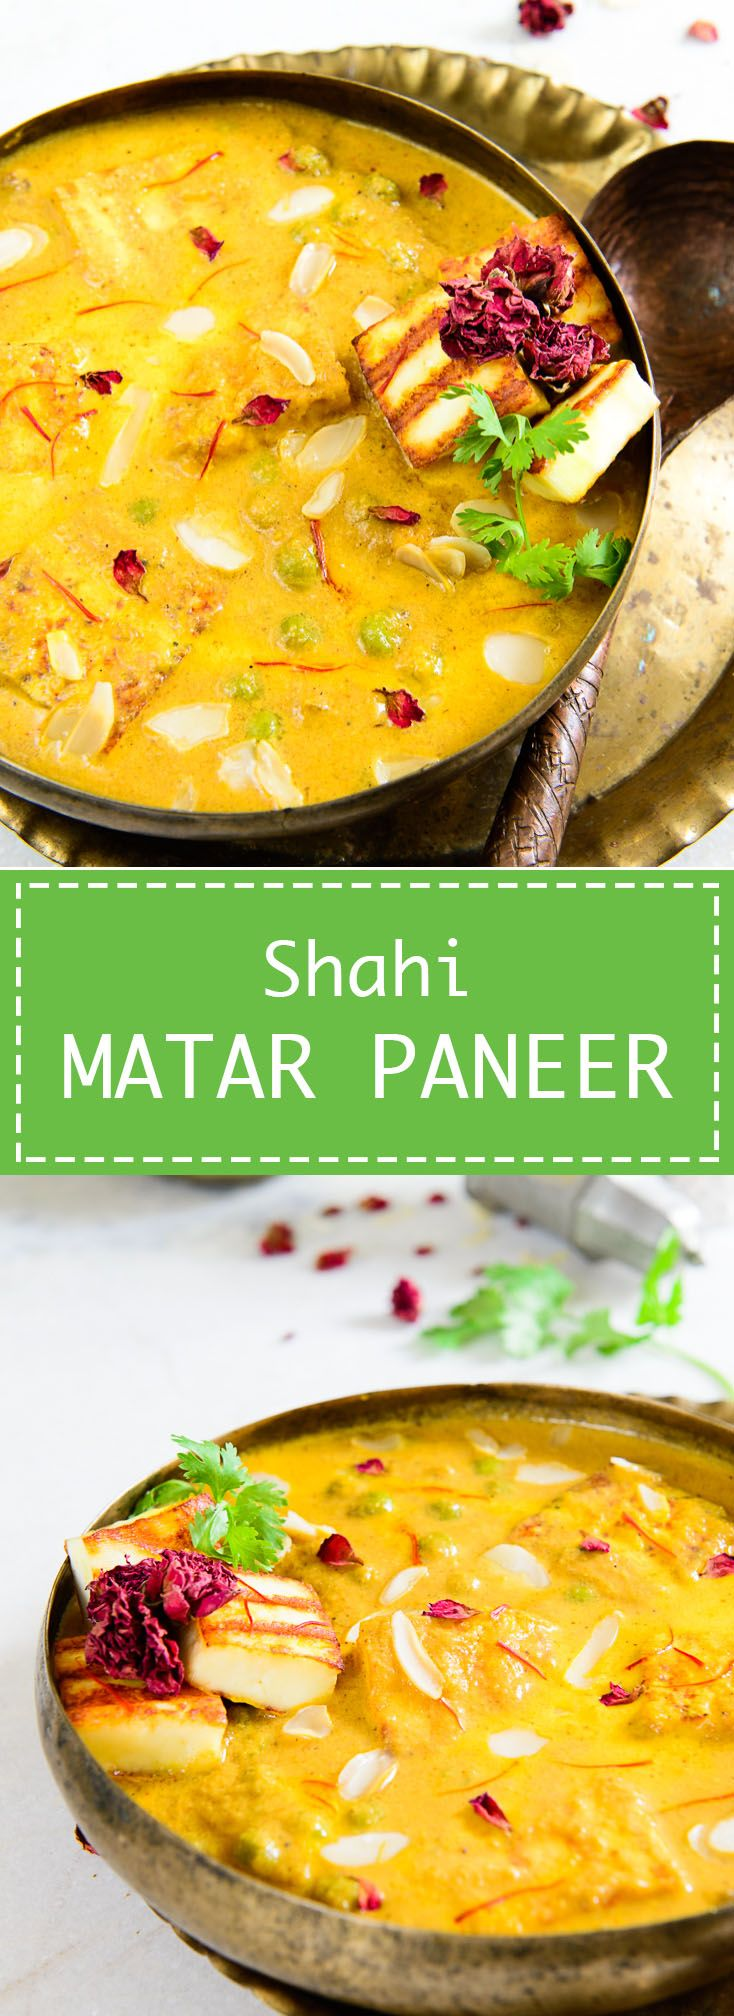 Shahi Matar Paneer A rich and creamy vegetarian Indian curry which can be enjoyed with any Indian bread